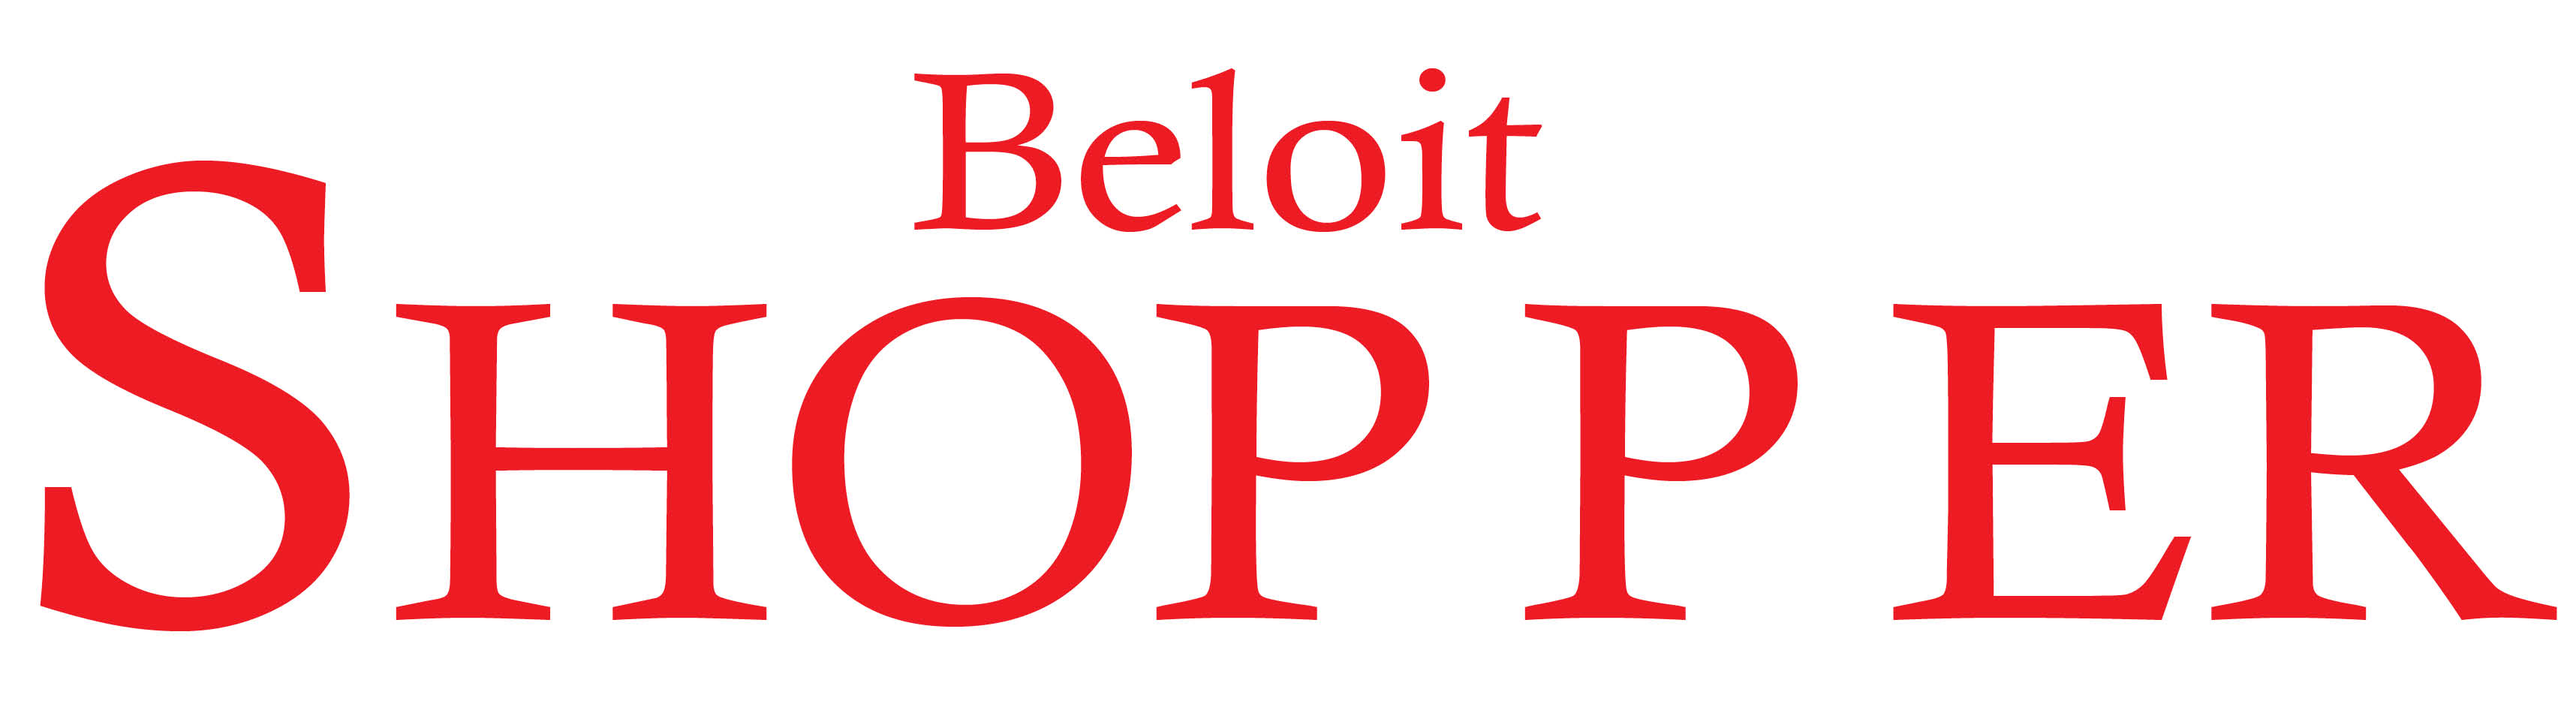 8/30/18 Beloit Shopper